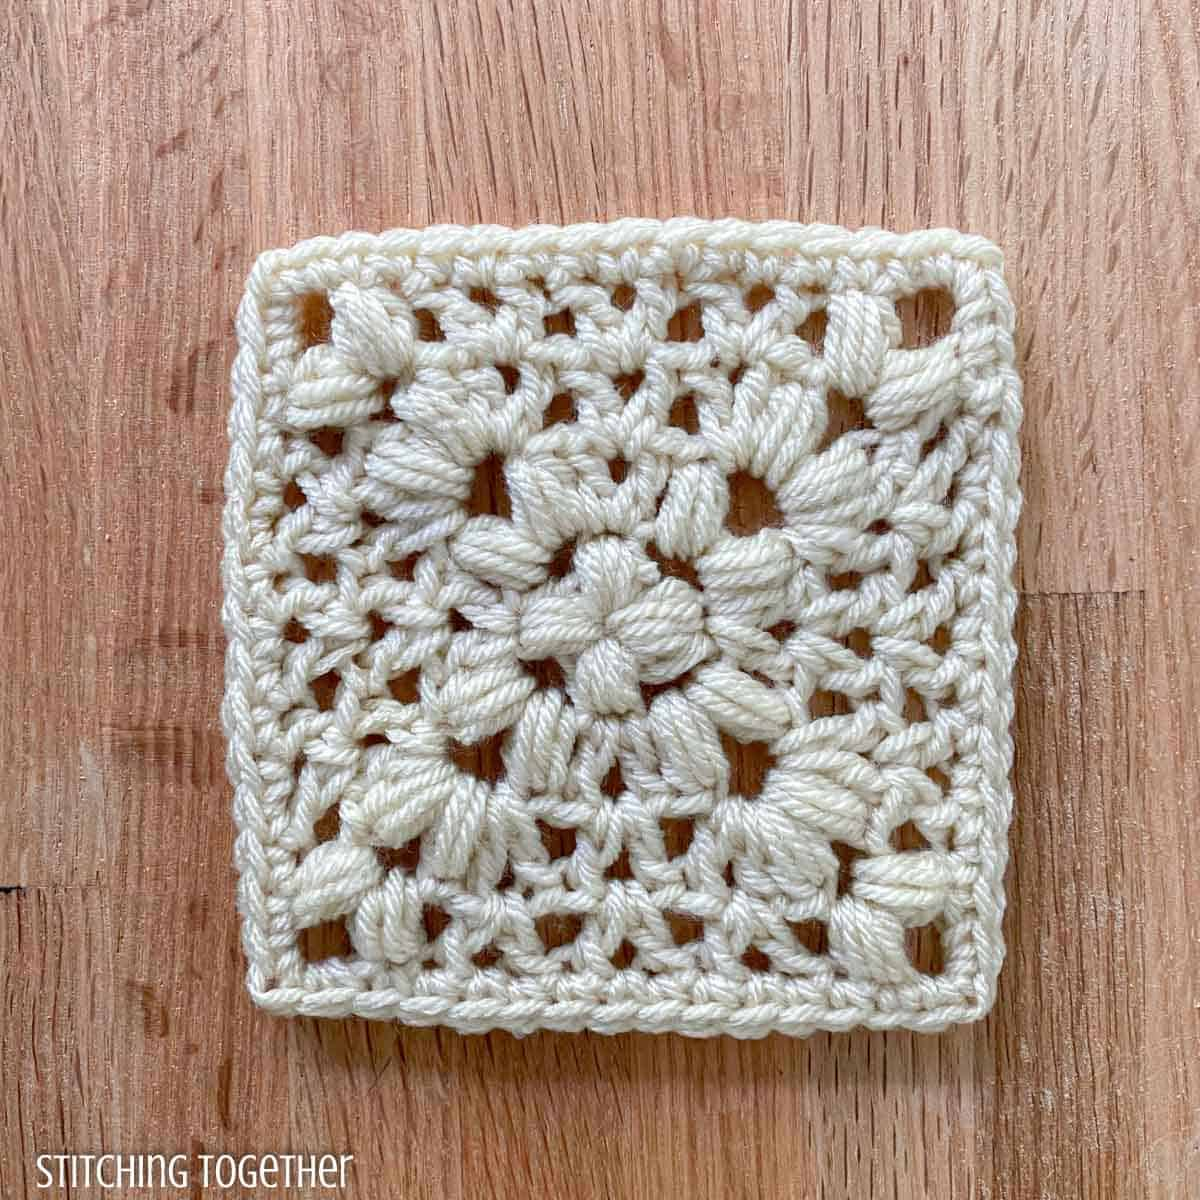 ivory crochet granny square with open stitches